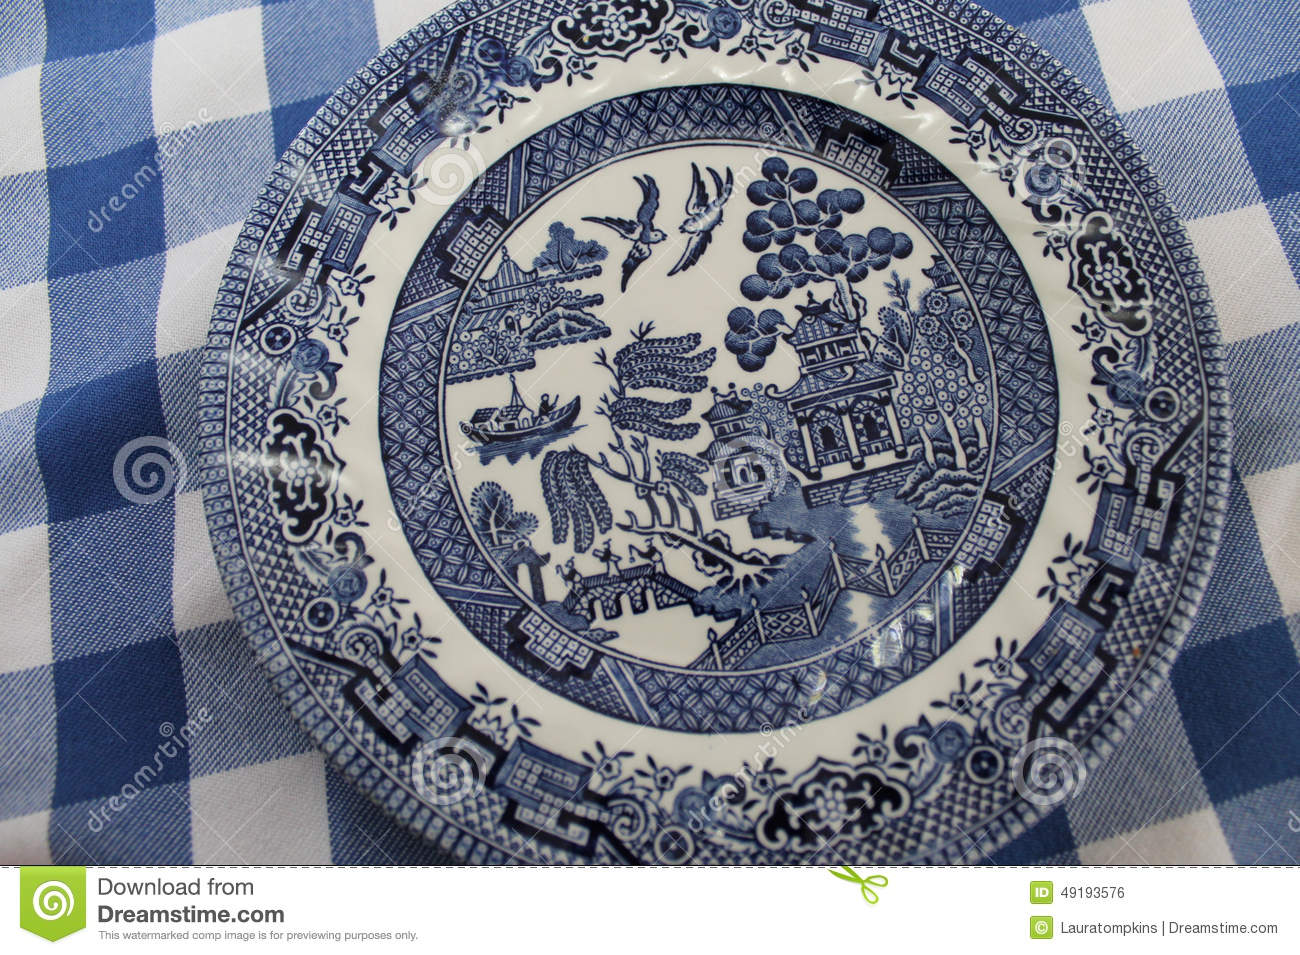 Classic Old Blue Willow China Plate On A Blue And White Tablecloth